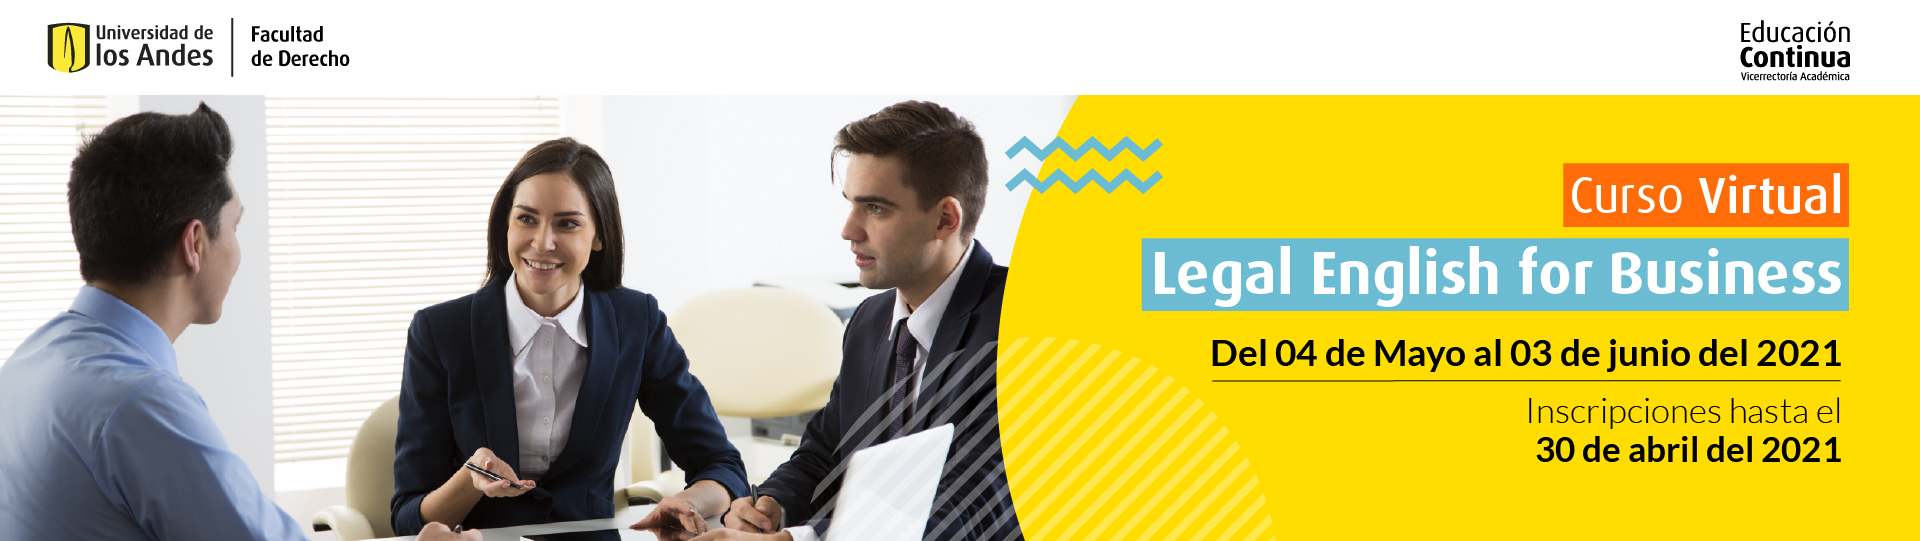 Curso Legal English for Business | Educación Continua | Uniandes